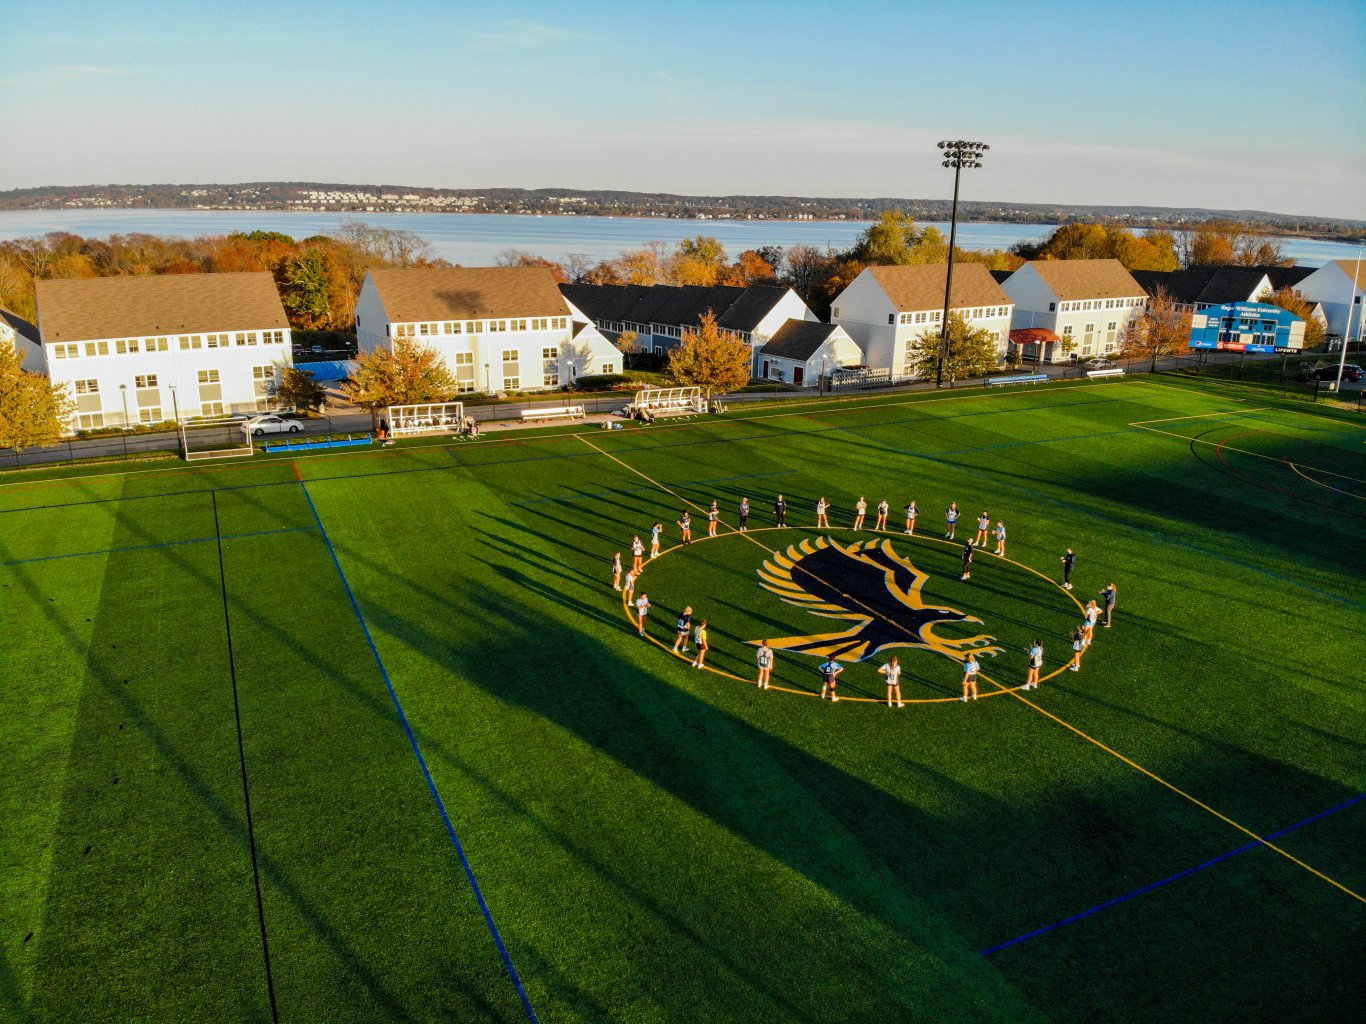 Women's lacrosse team groups up before practice